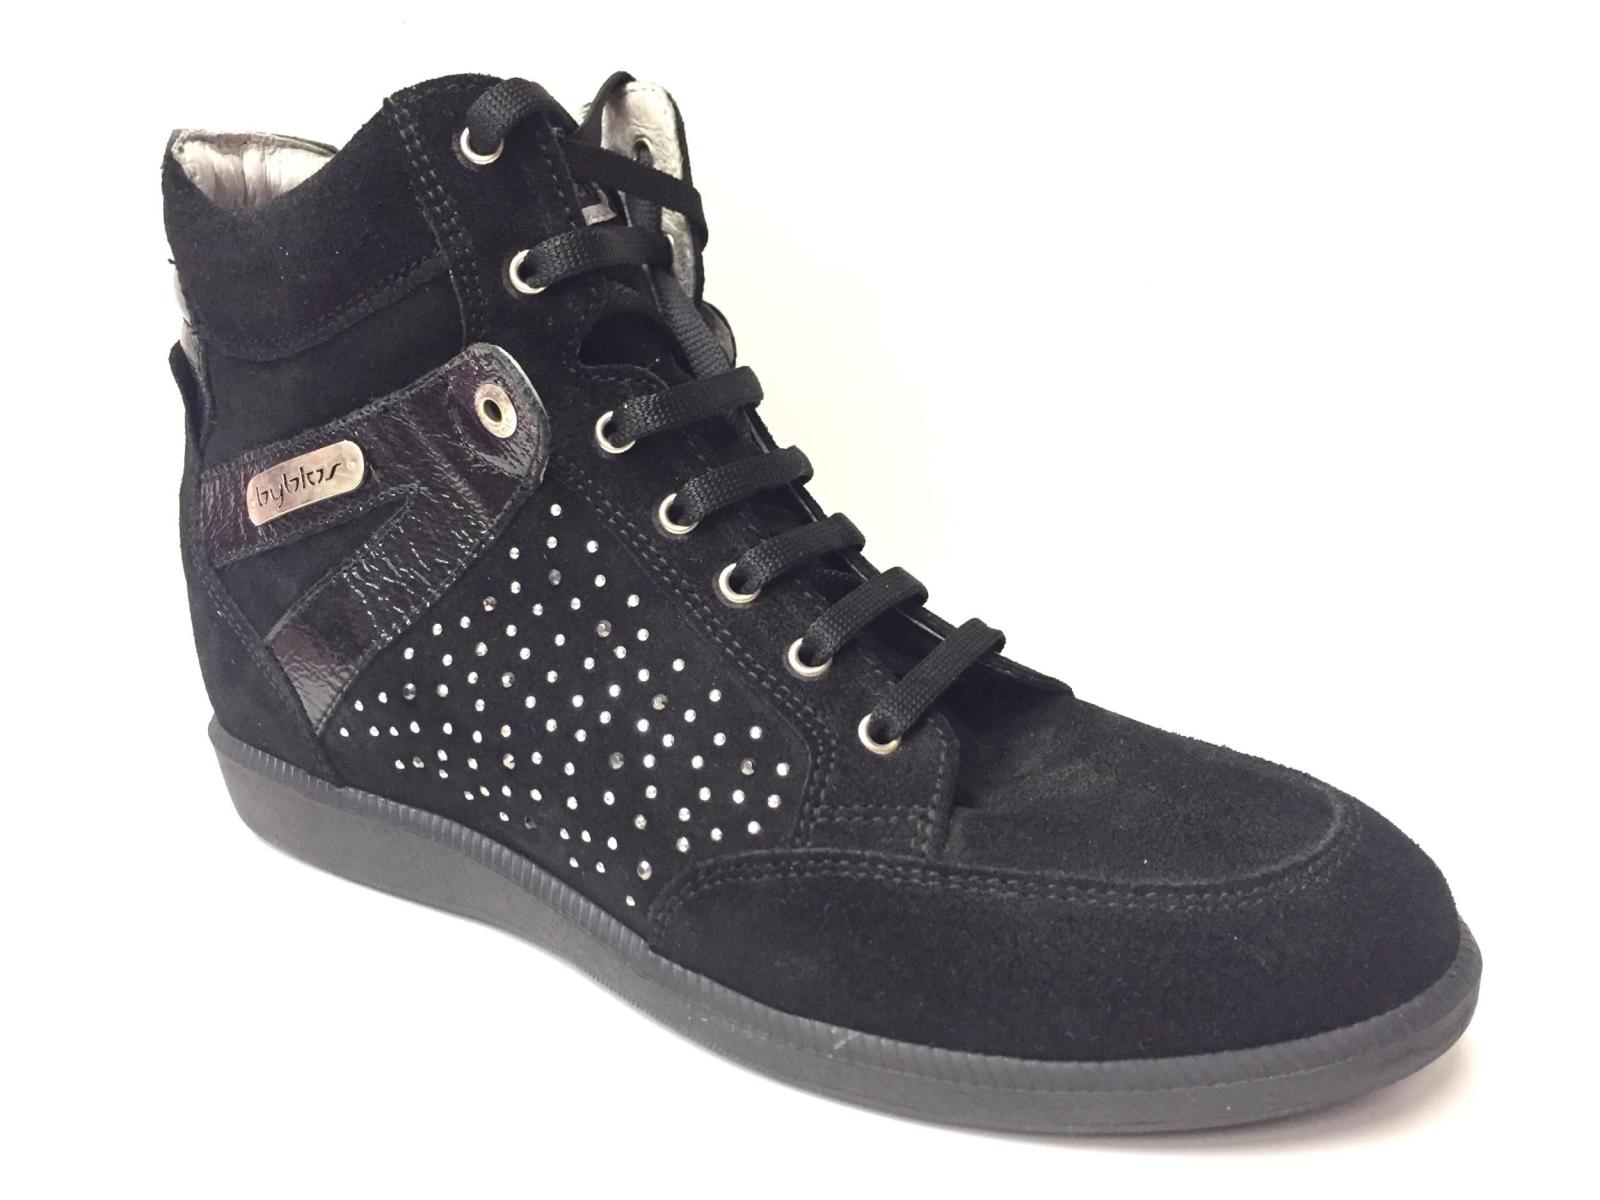 SCARPE SNEAKERS CASUAL DONNA BYBLOS SB30077 PELLE NERO ORIGINALE AI NEW